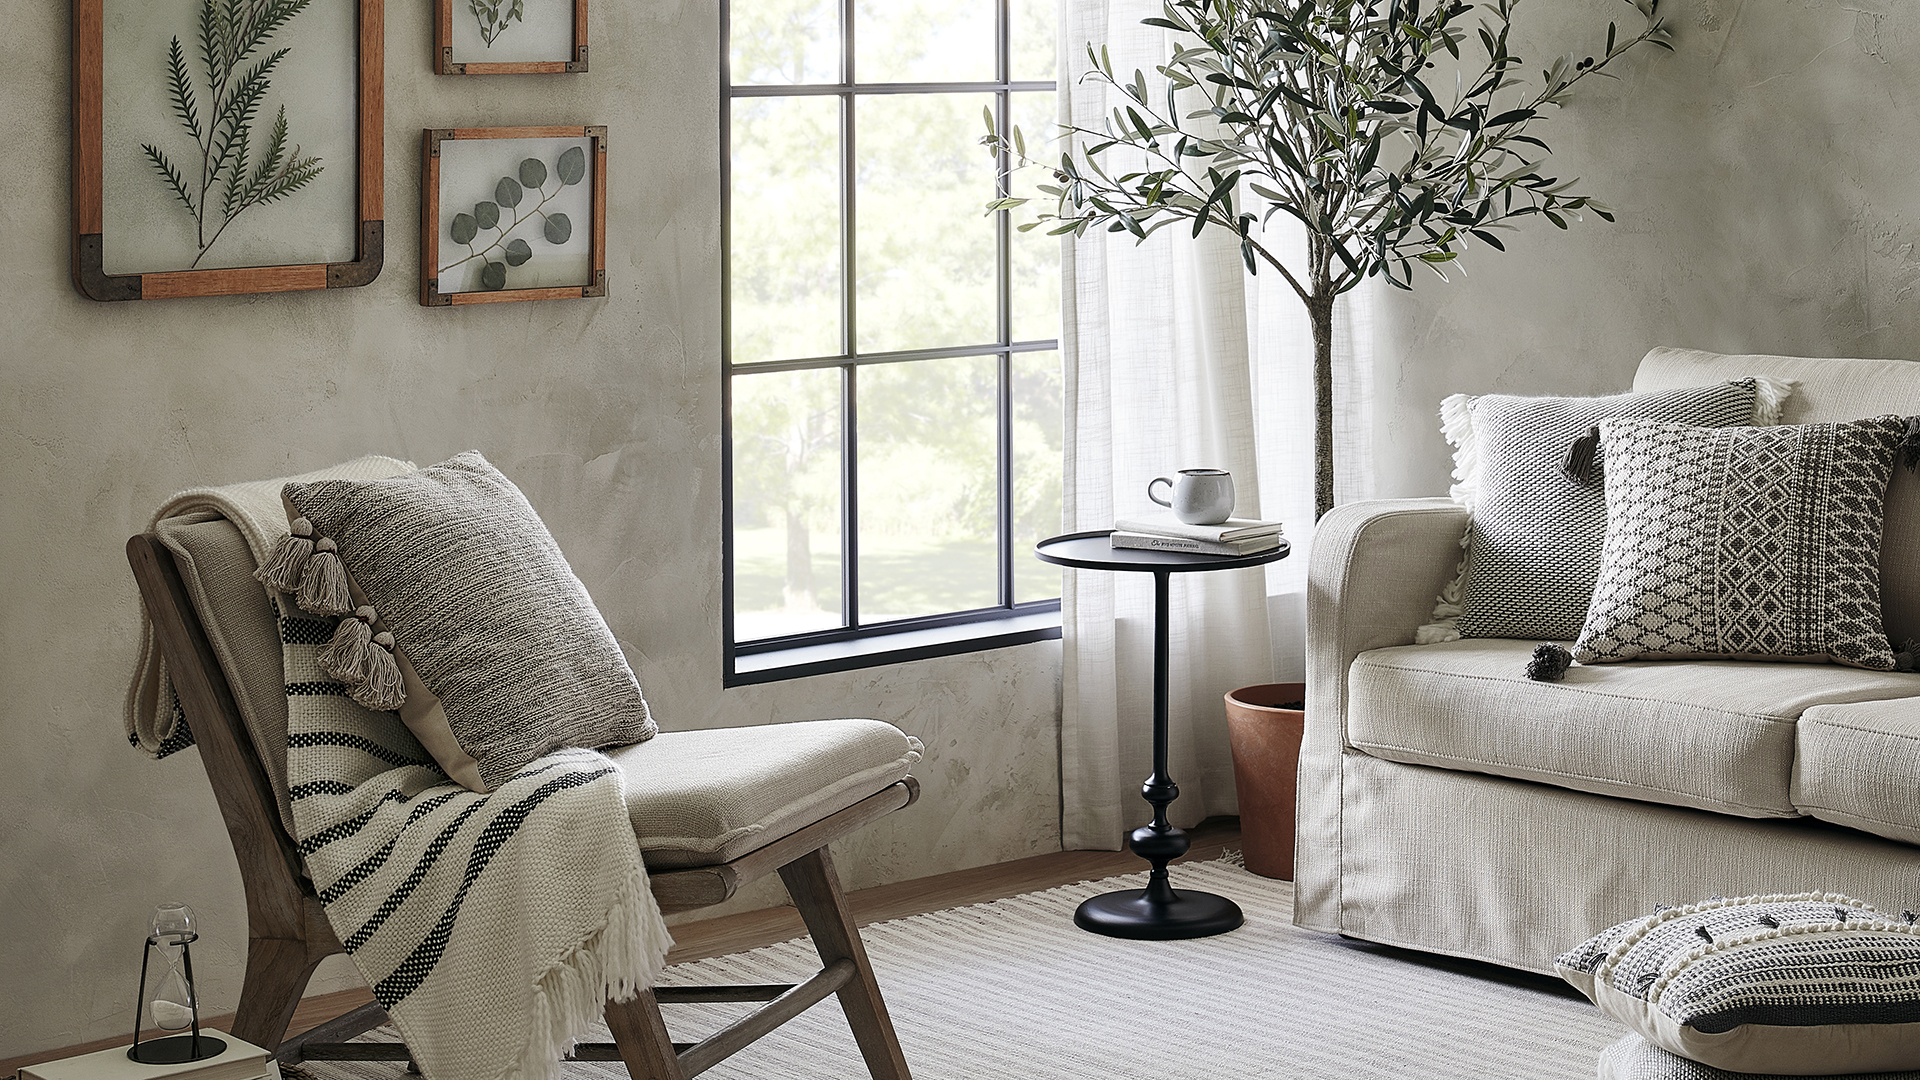 Joanna gaines new magnolia fall collection is available - Joanna gaines bedding collection ...